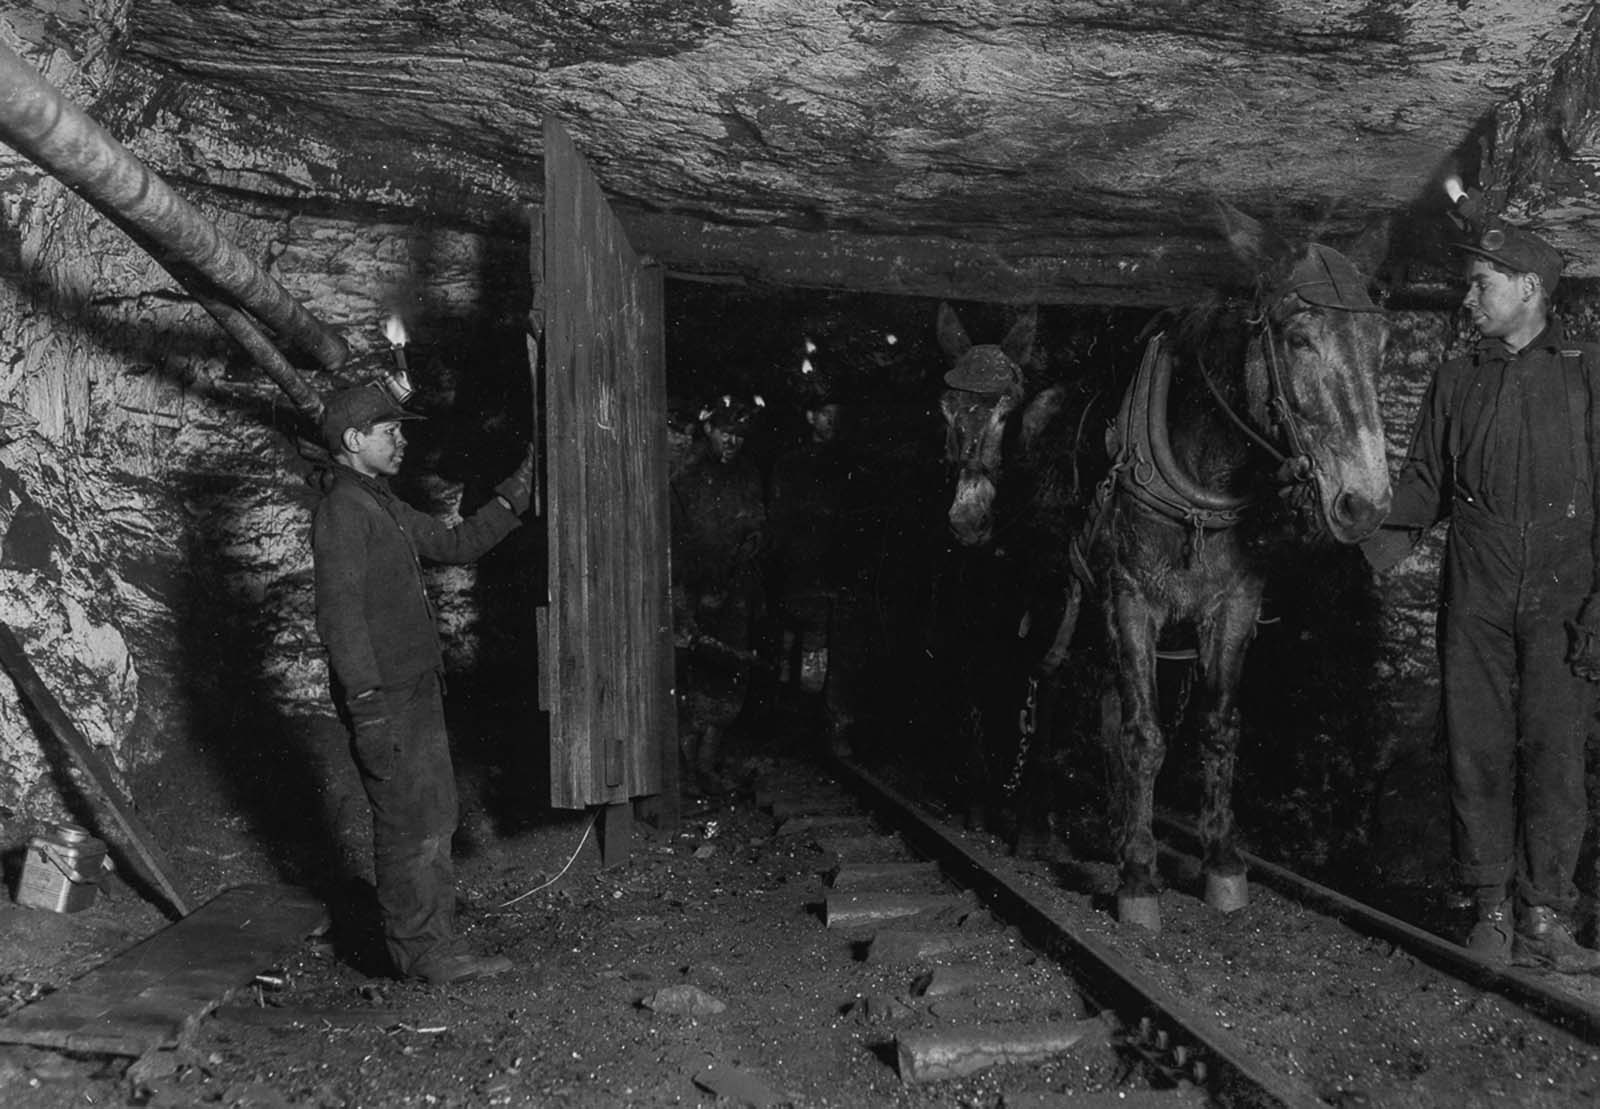 Willie Bryden, age 14, holds the door for a mule cart in a Pennsylvania mine. 1911.